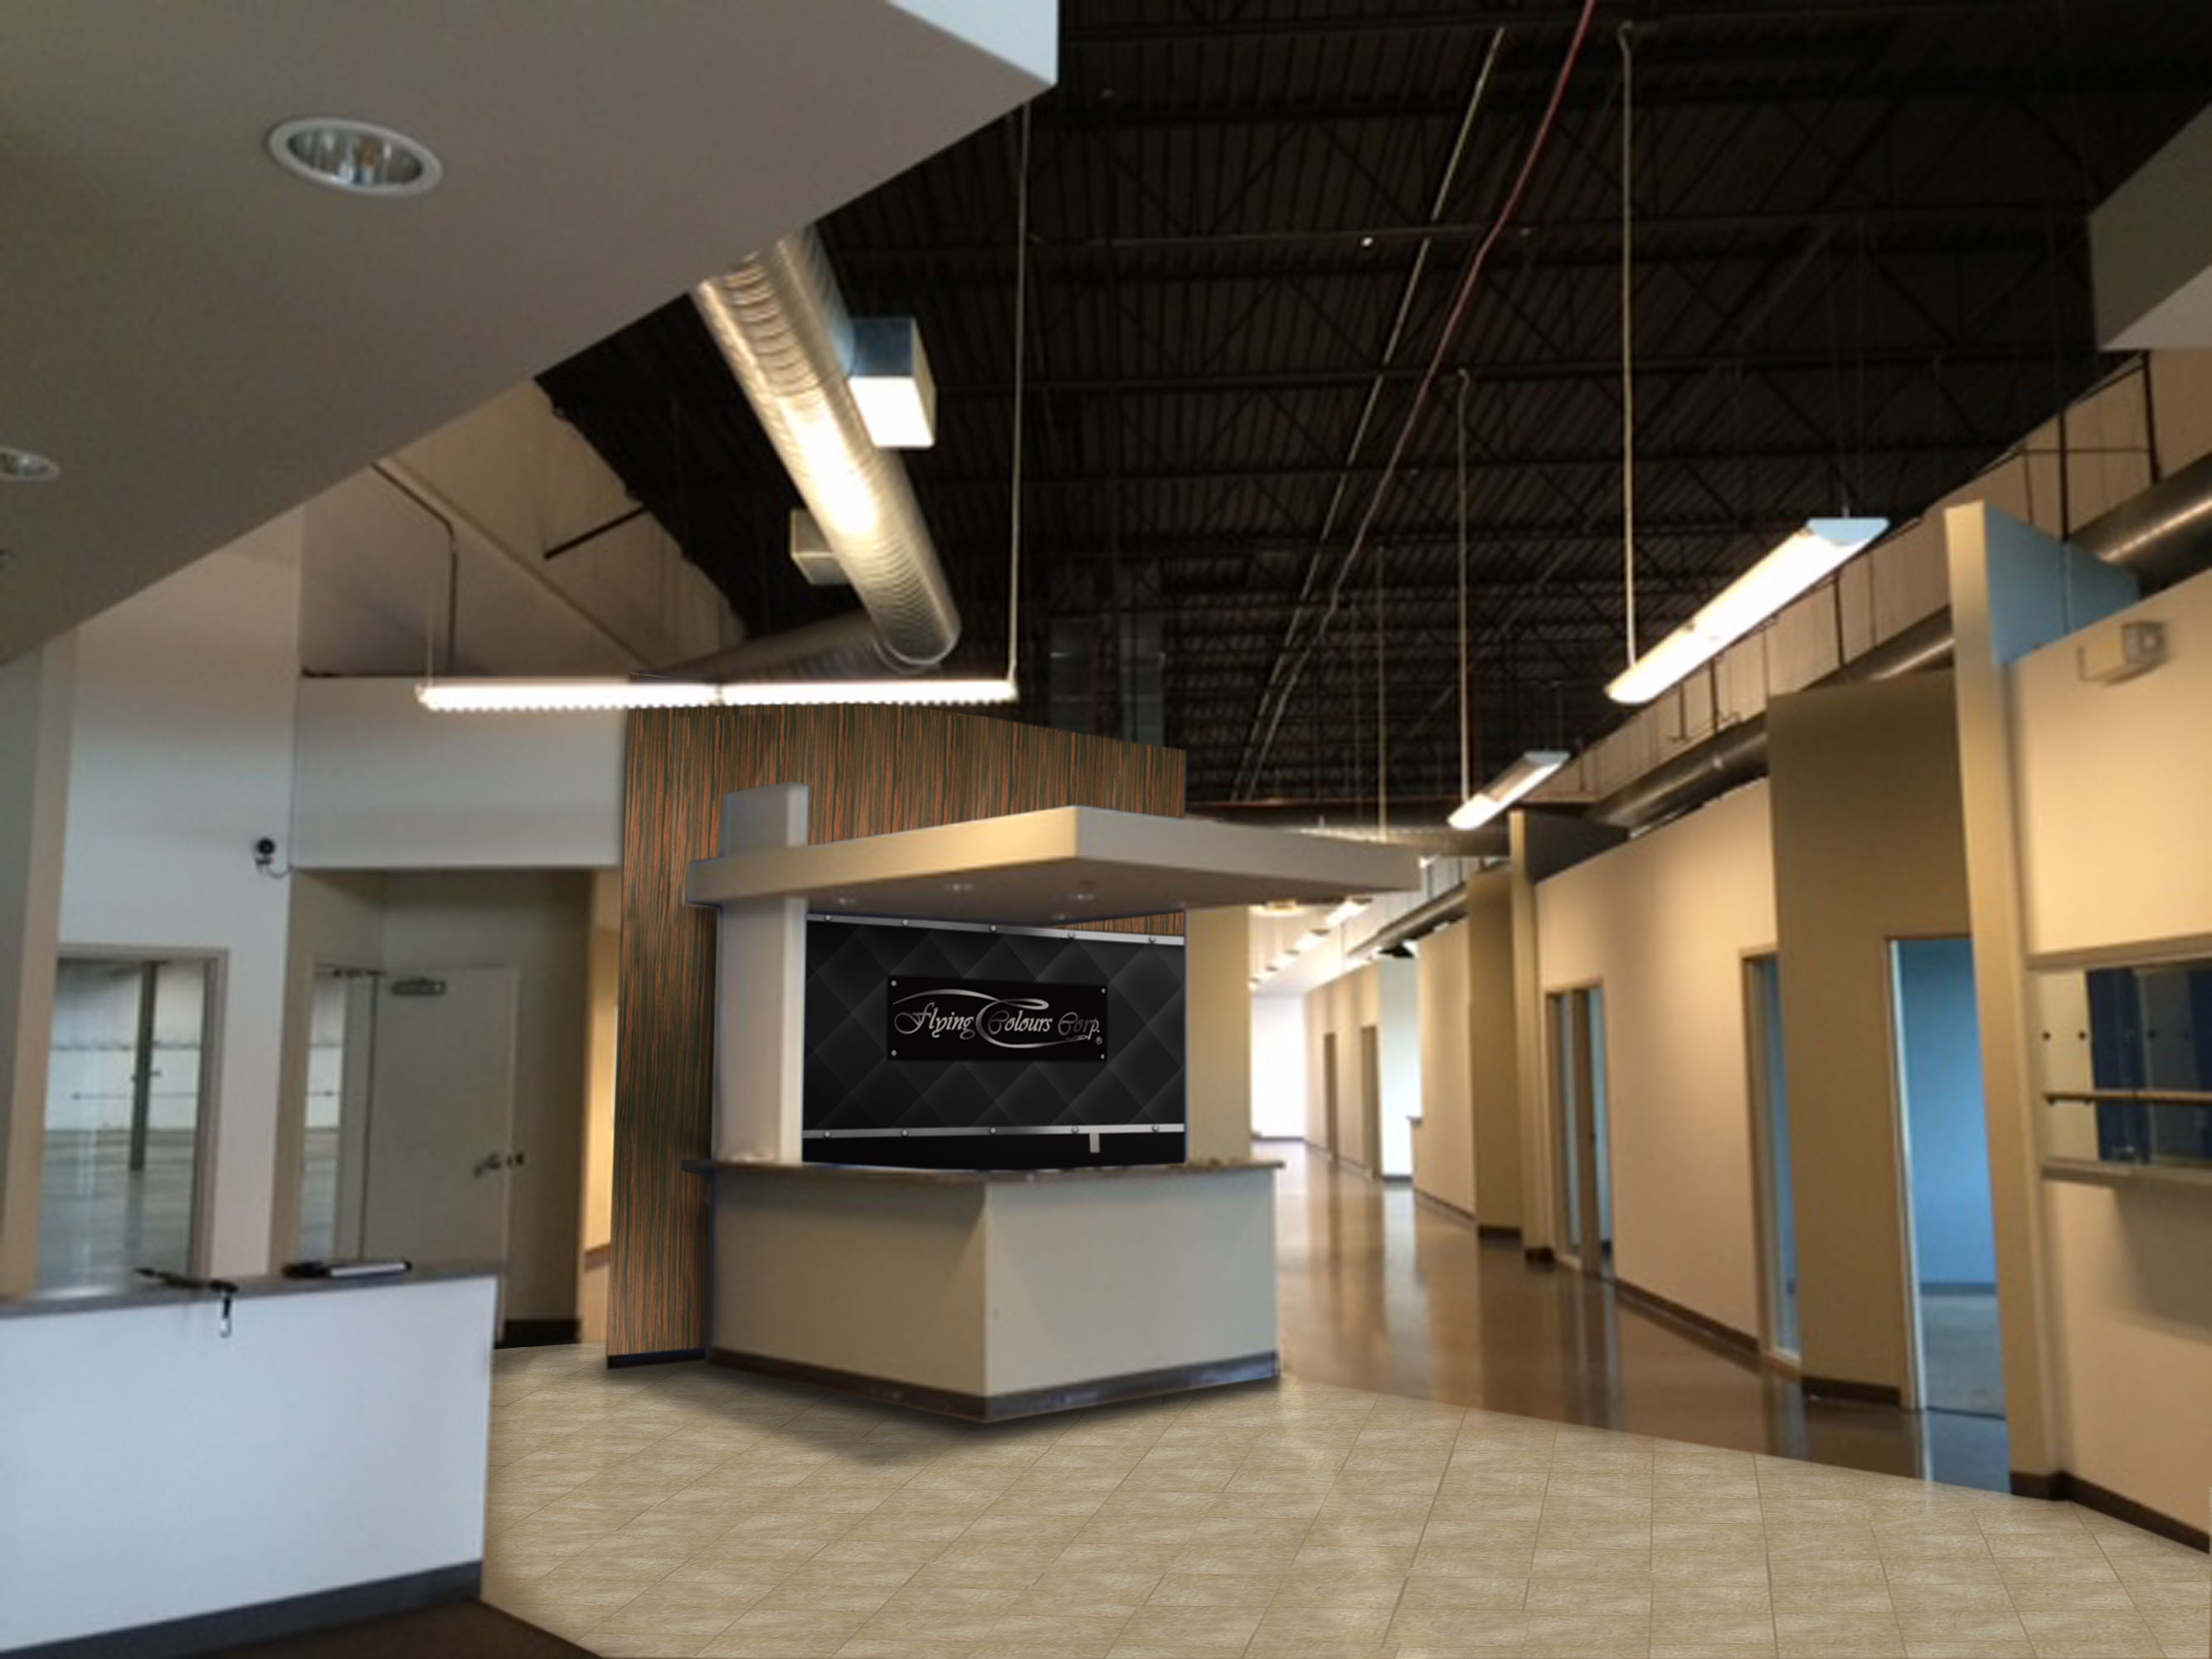 Flying Colours Corp. begins the first phase of the St. Louis facility expansion.